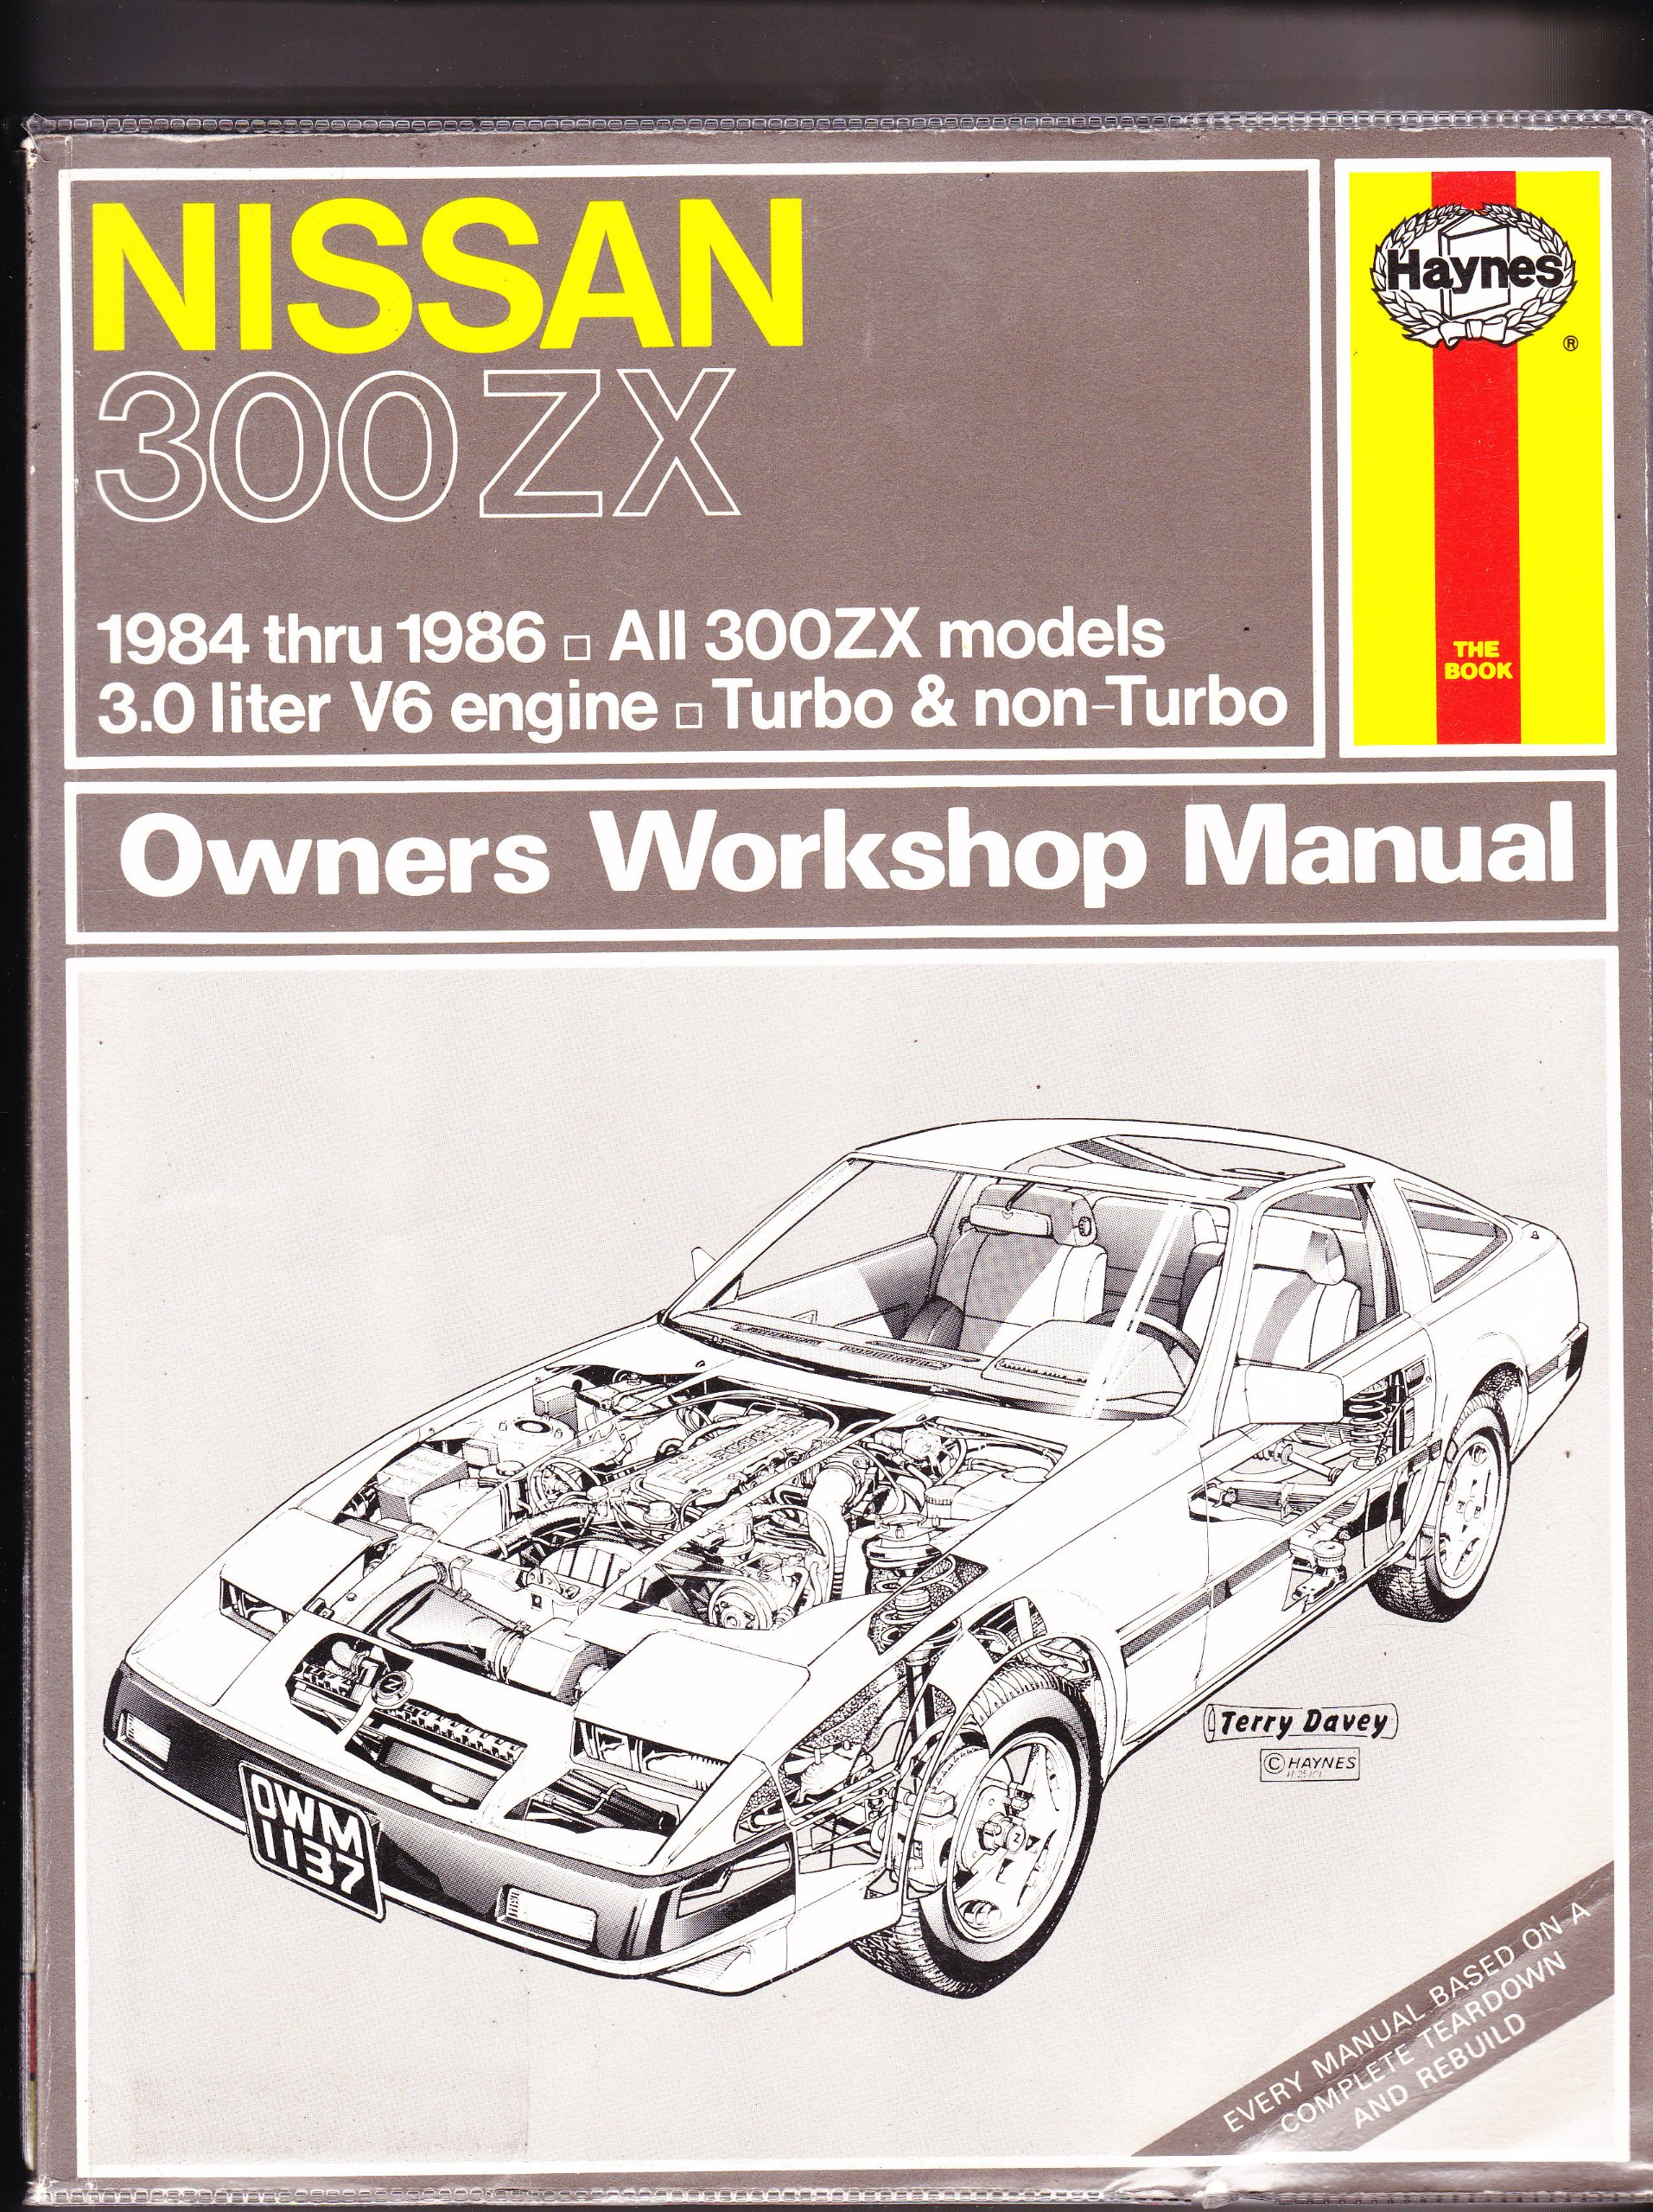 Nissan 300ZX All Models 1984-86 Owners Workshop Manual Bk No 1137: Amazon.es: Homer Eubanks, J. H. Haynes: Libros en idiomas extranjeros